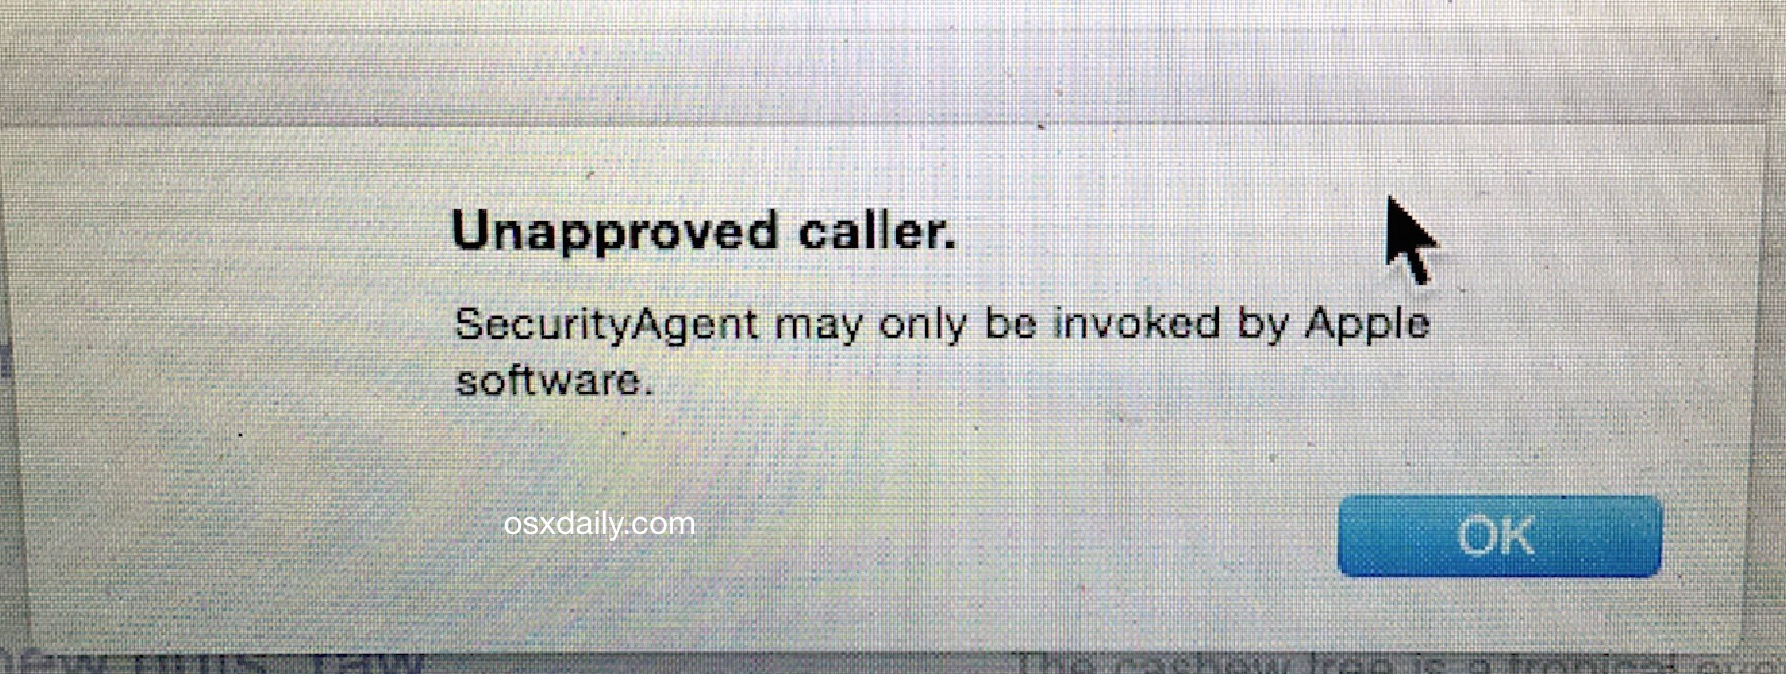 unapproved-caller-securityagent-message-mac-os-x